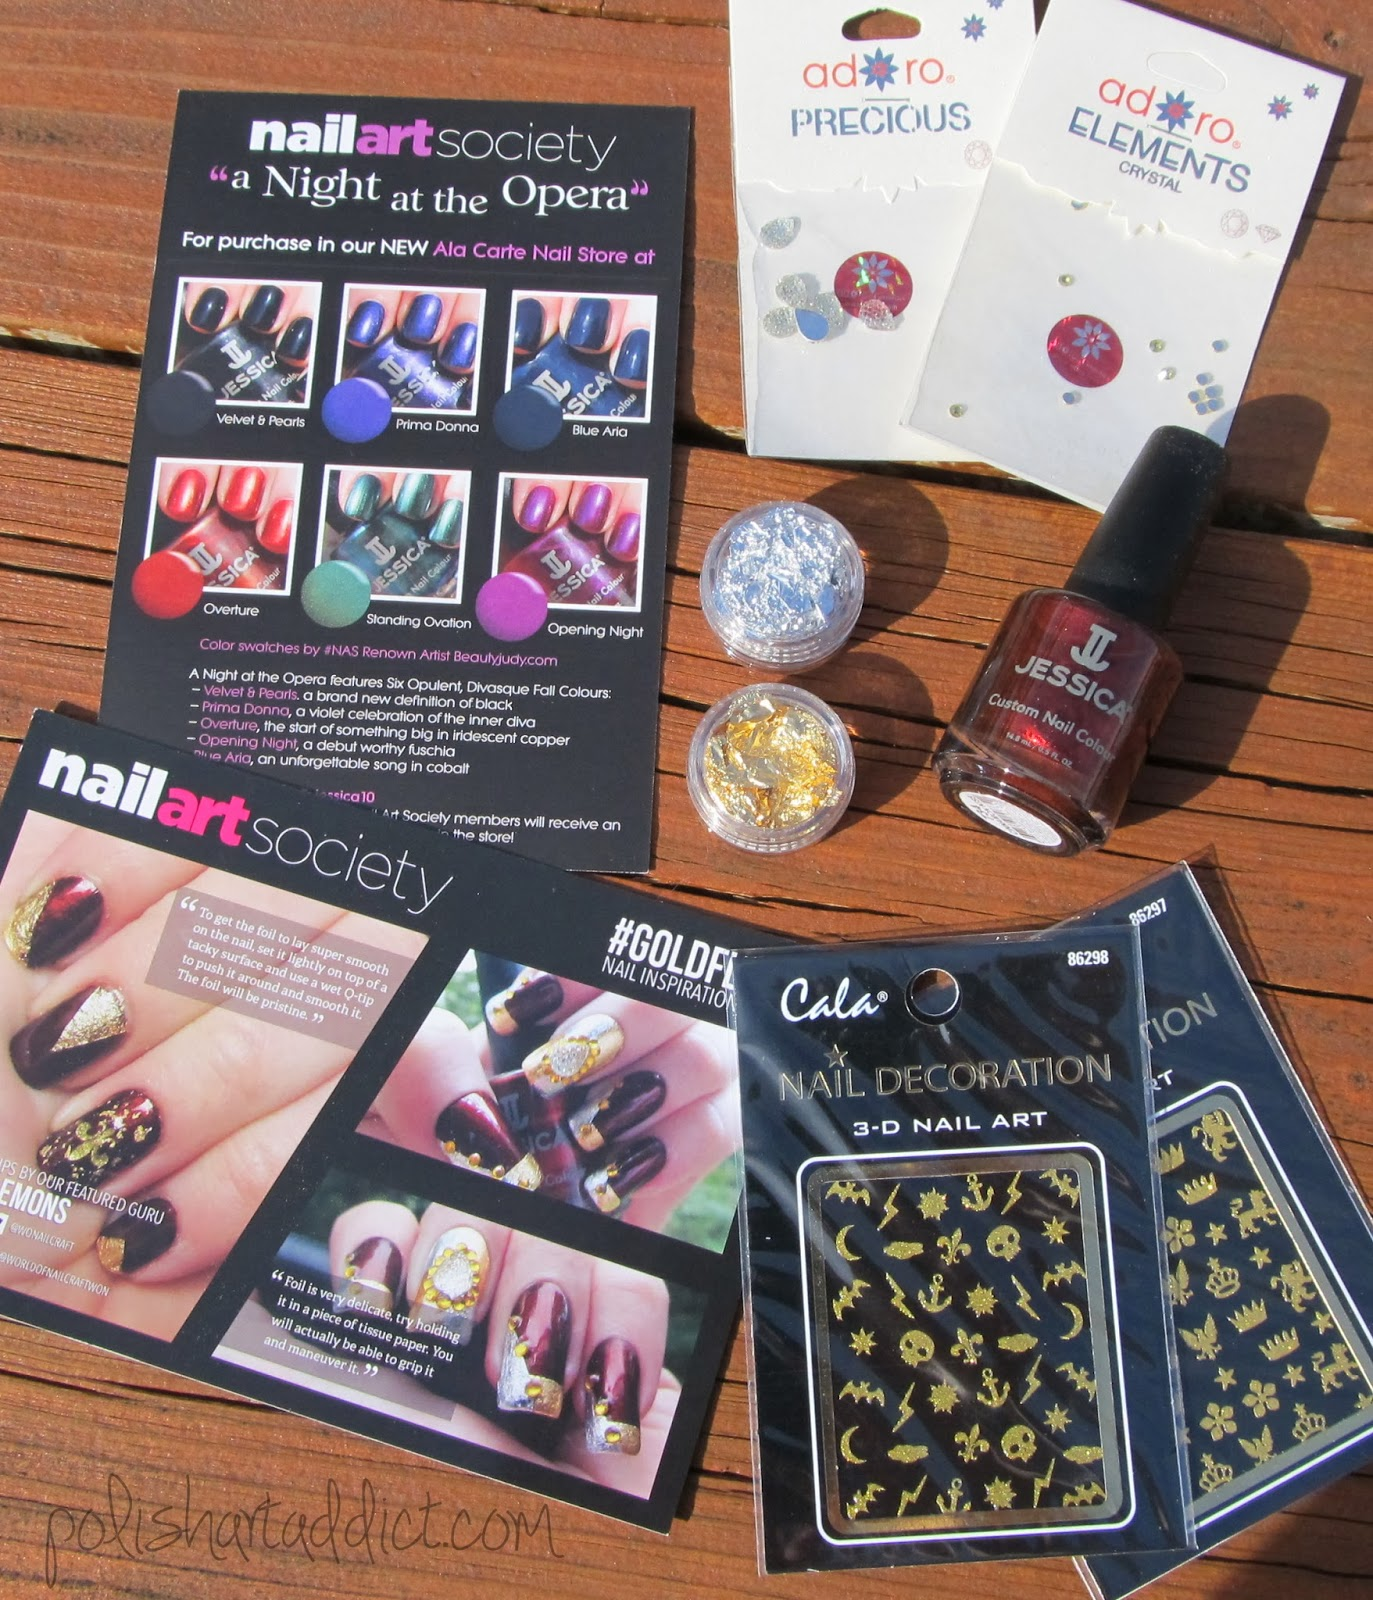 Nail Art Society - #GoldFlake